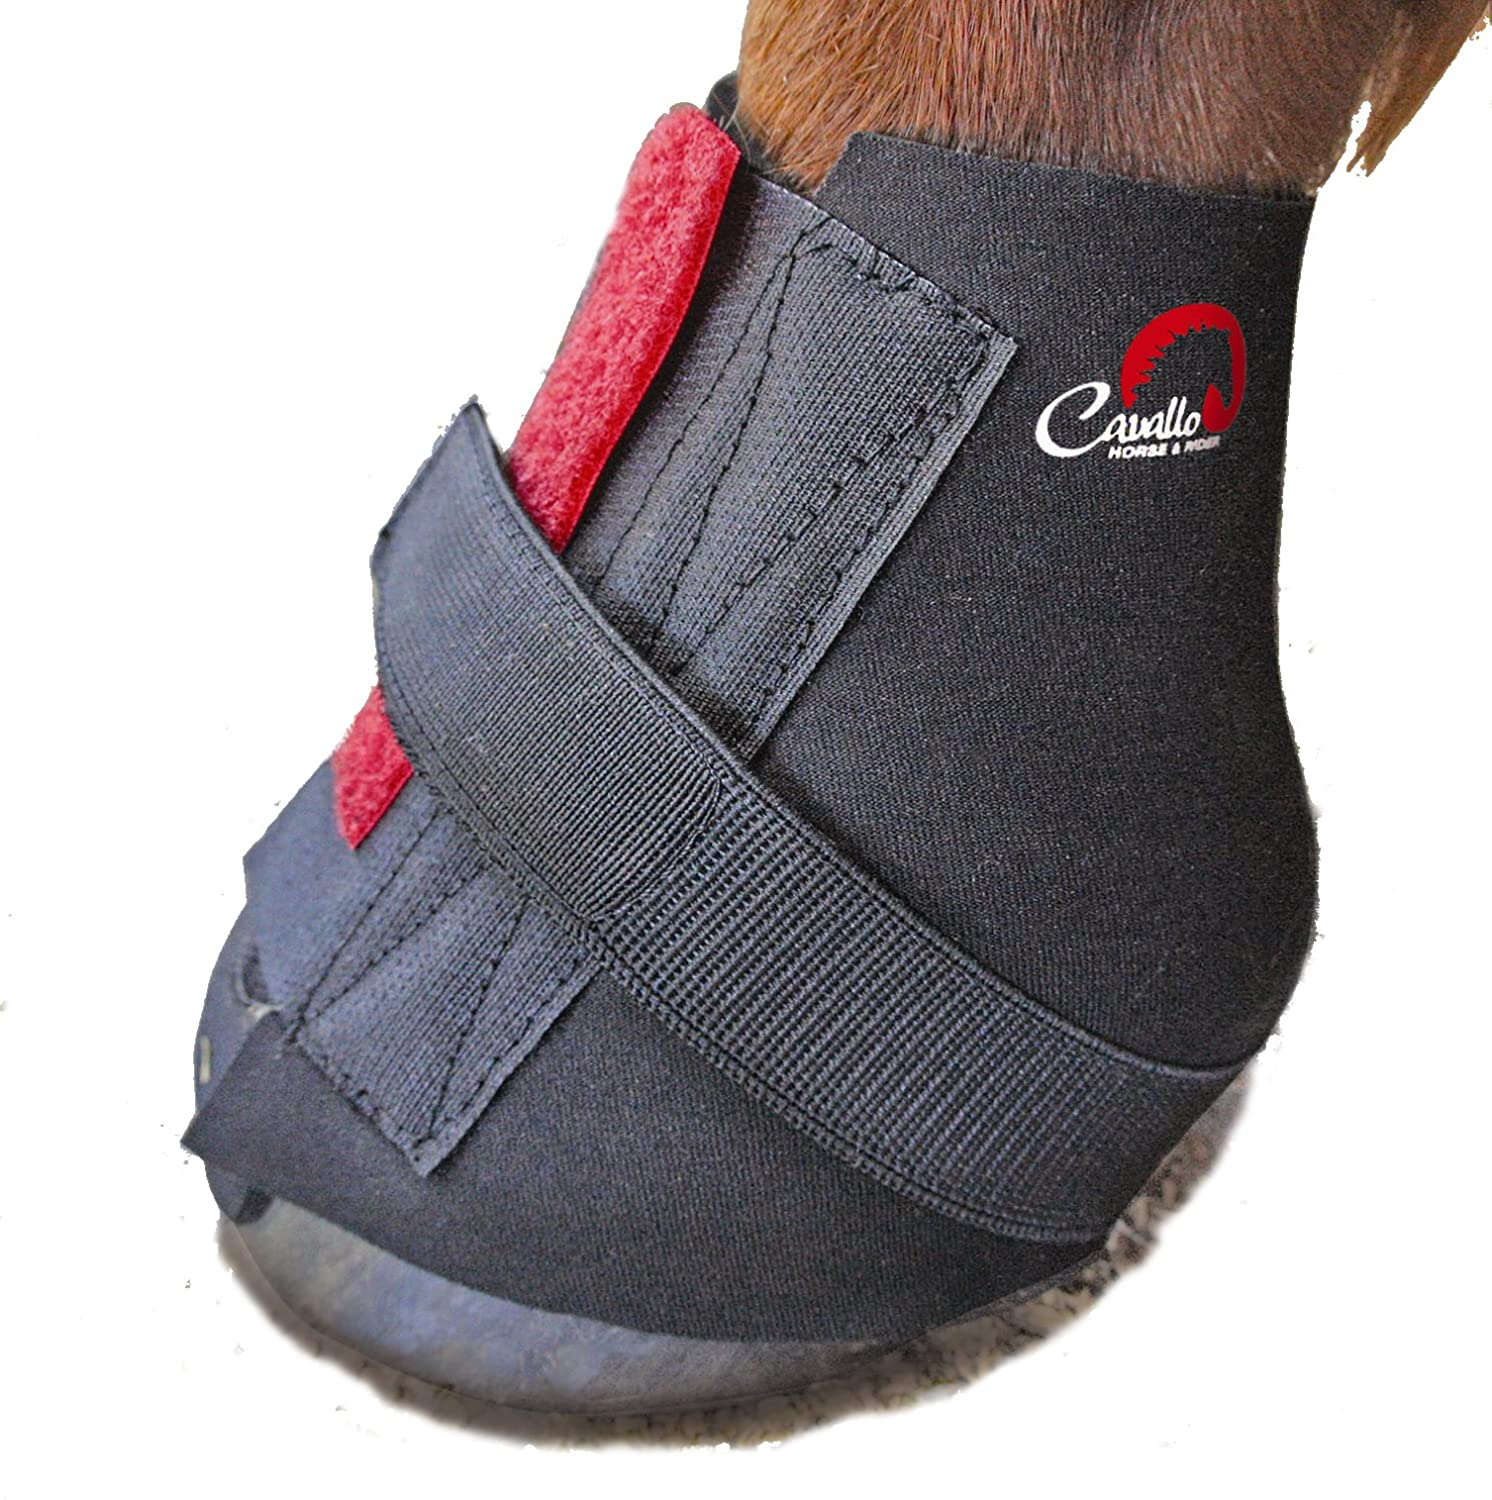 Cavallo Pastern Wrap for Horse Hoof Boot, Small, Black PS